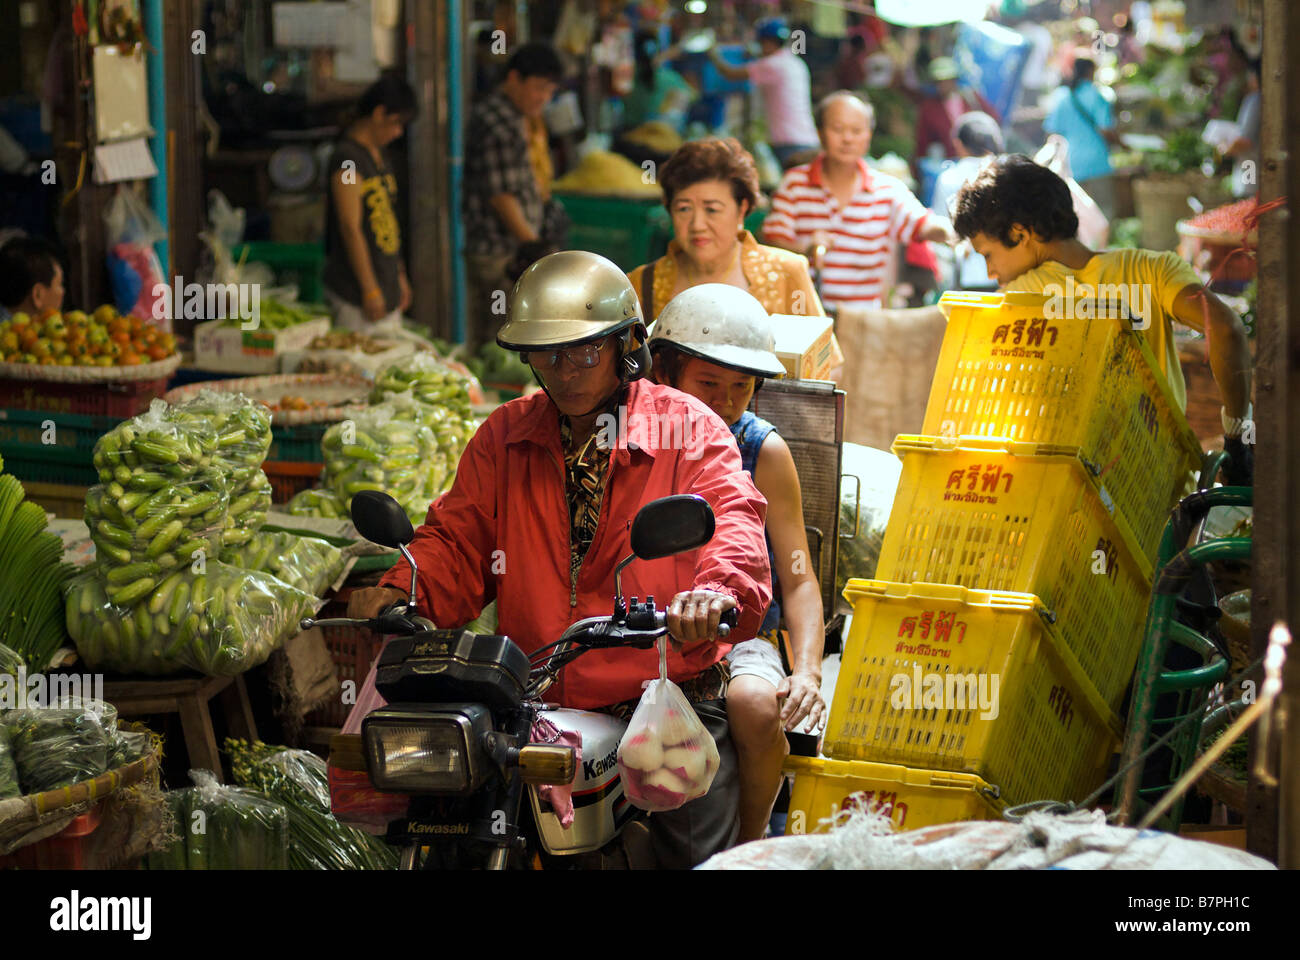 People on motorcycle riding through busy congested alleyway Pak Khlong Talad fresh fruit and vegetable market Bangkok - Stock Image